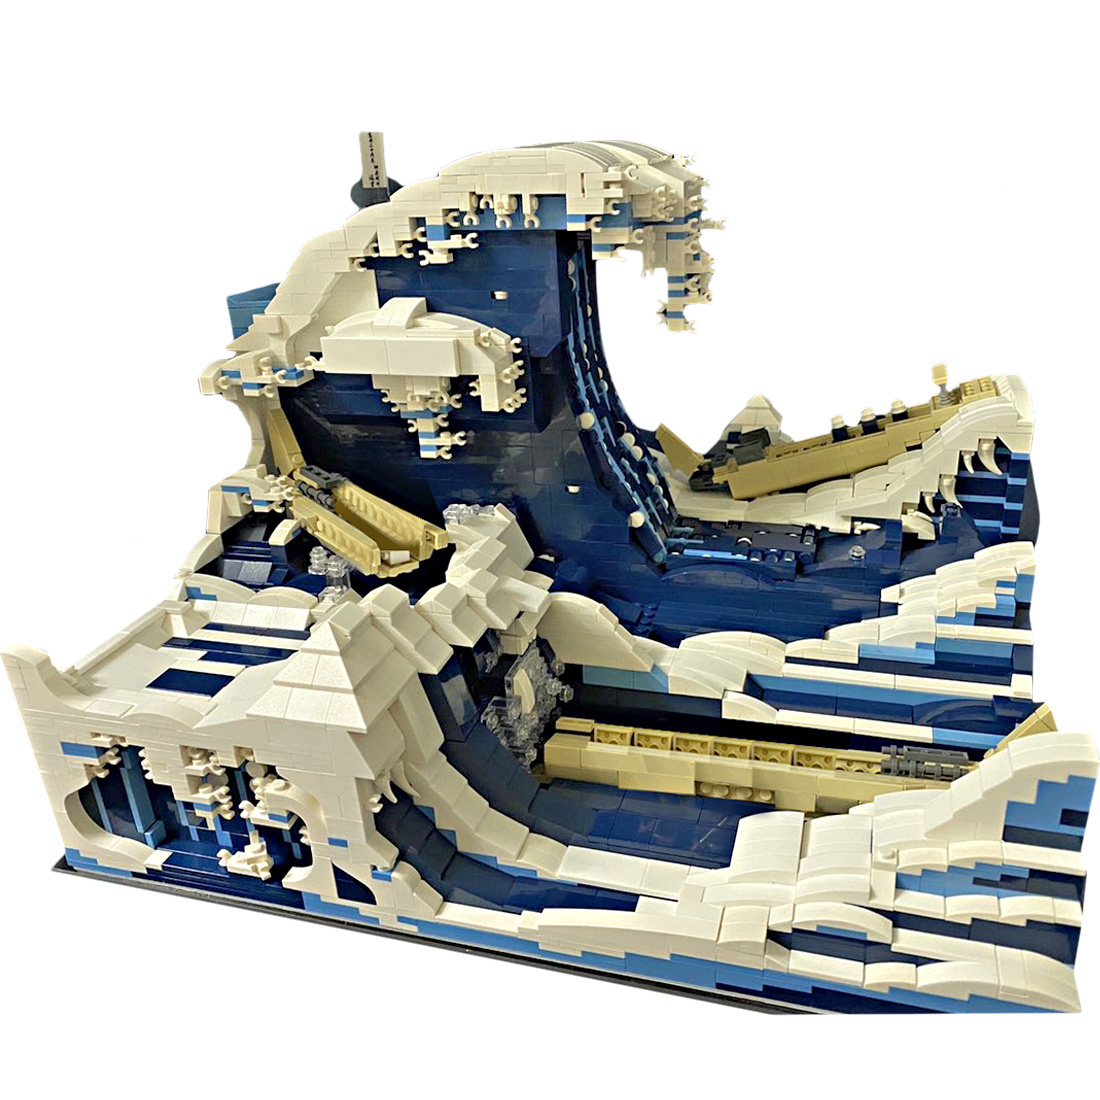 CREATOR MOC 27620 Fast Cargo Boat Battling The Waves by Jerry MOCBRICKLAND